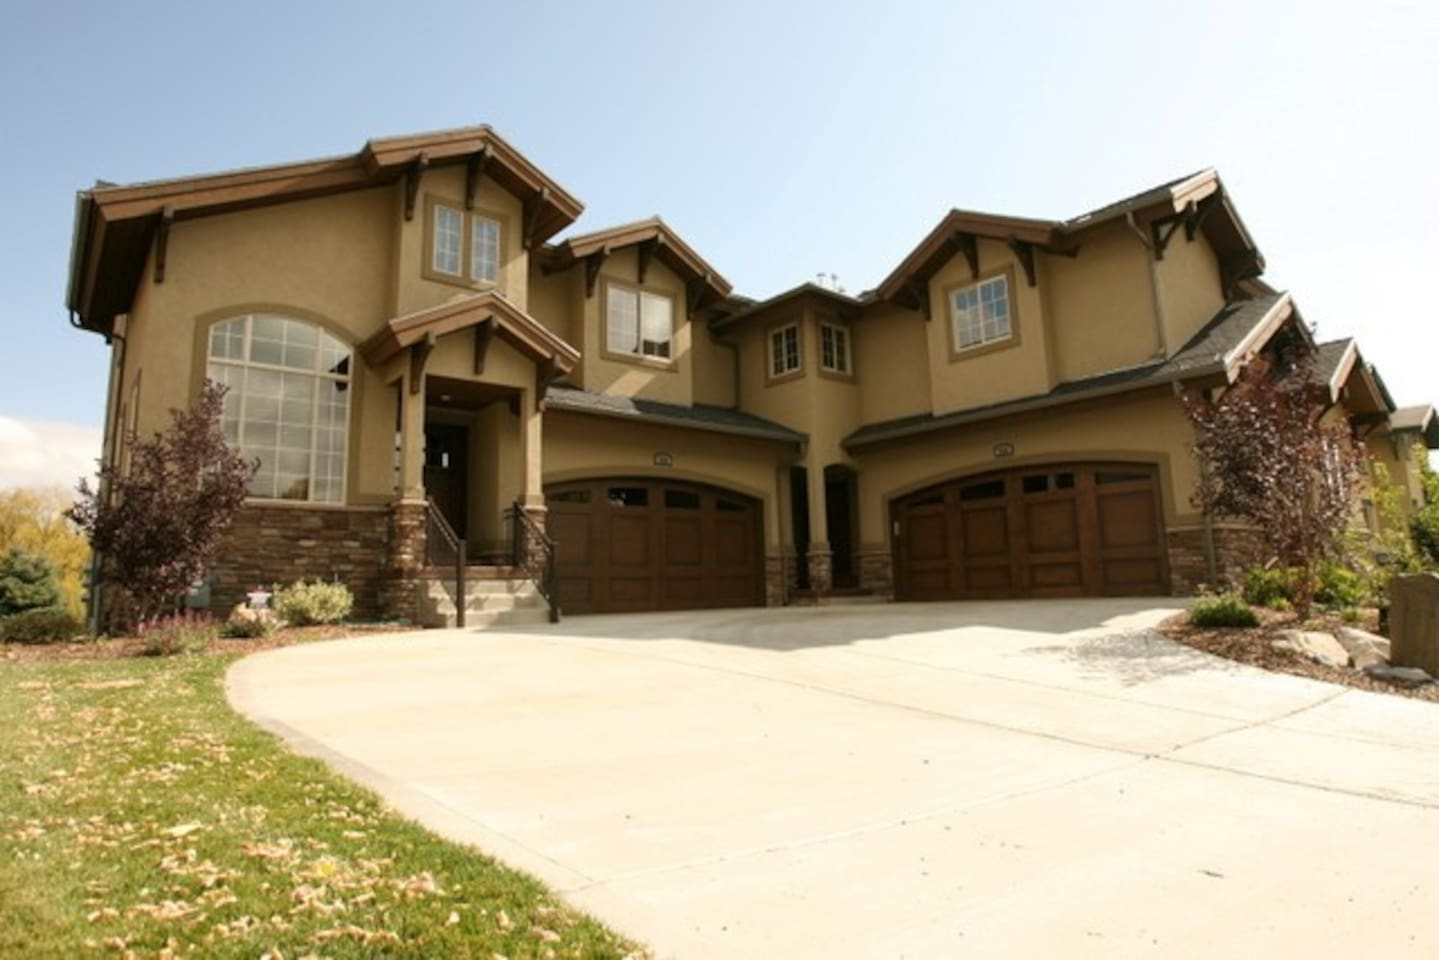 Swiss Creek - Townhouses for Rent in Midway, Utah, United States